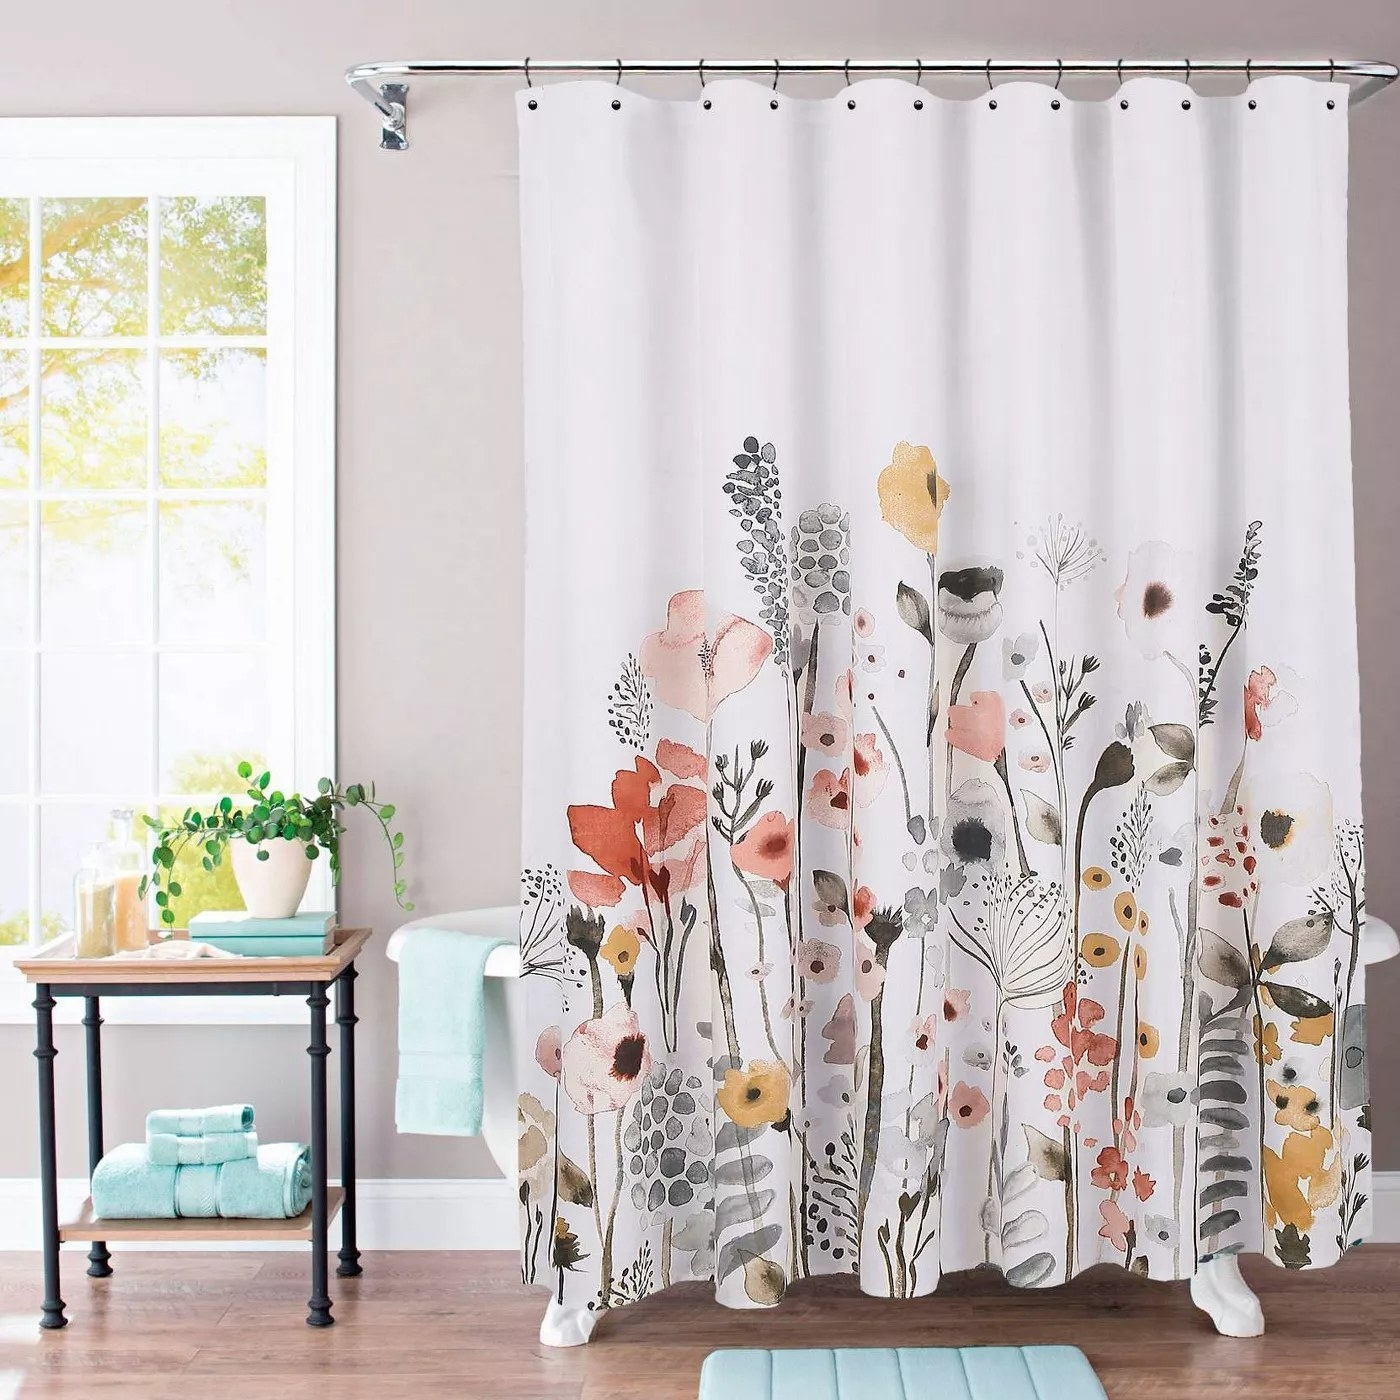 The floral shower curtain with a white background on a shower in a bathroom